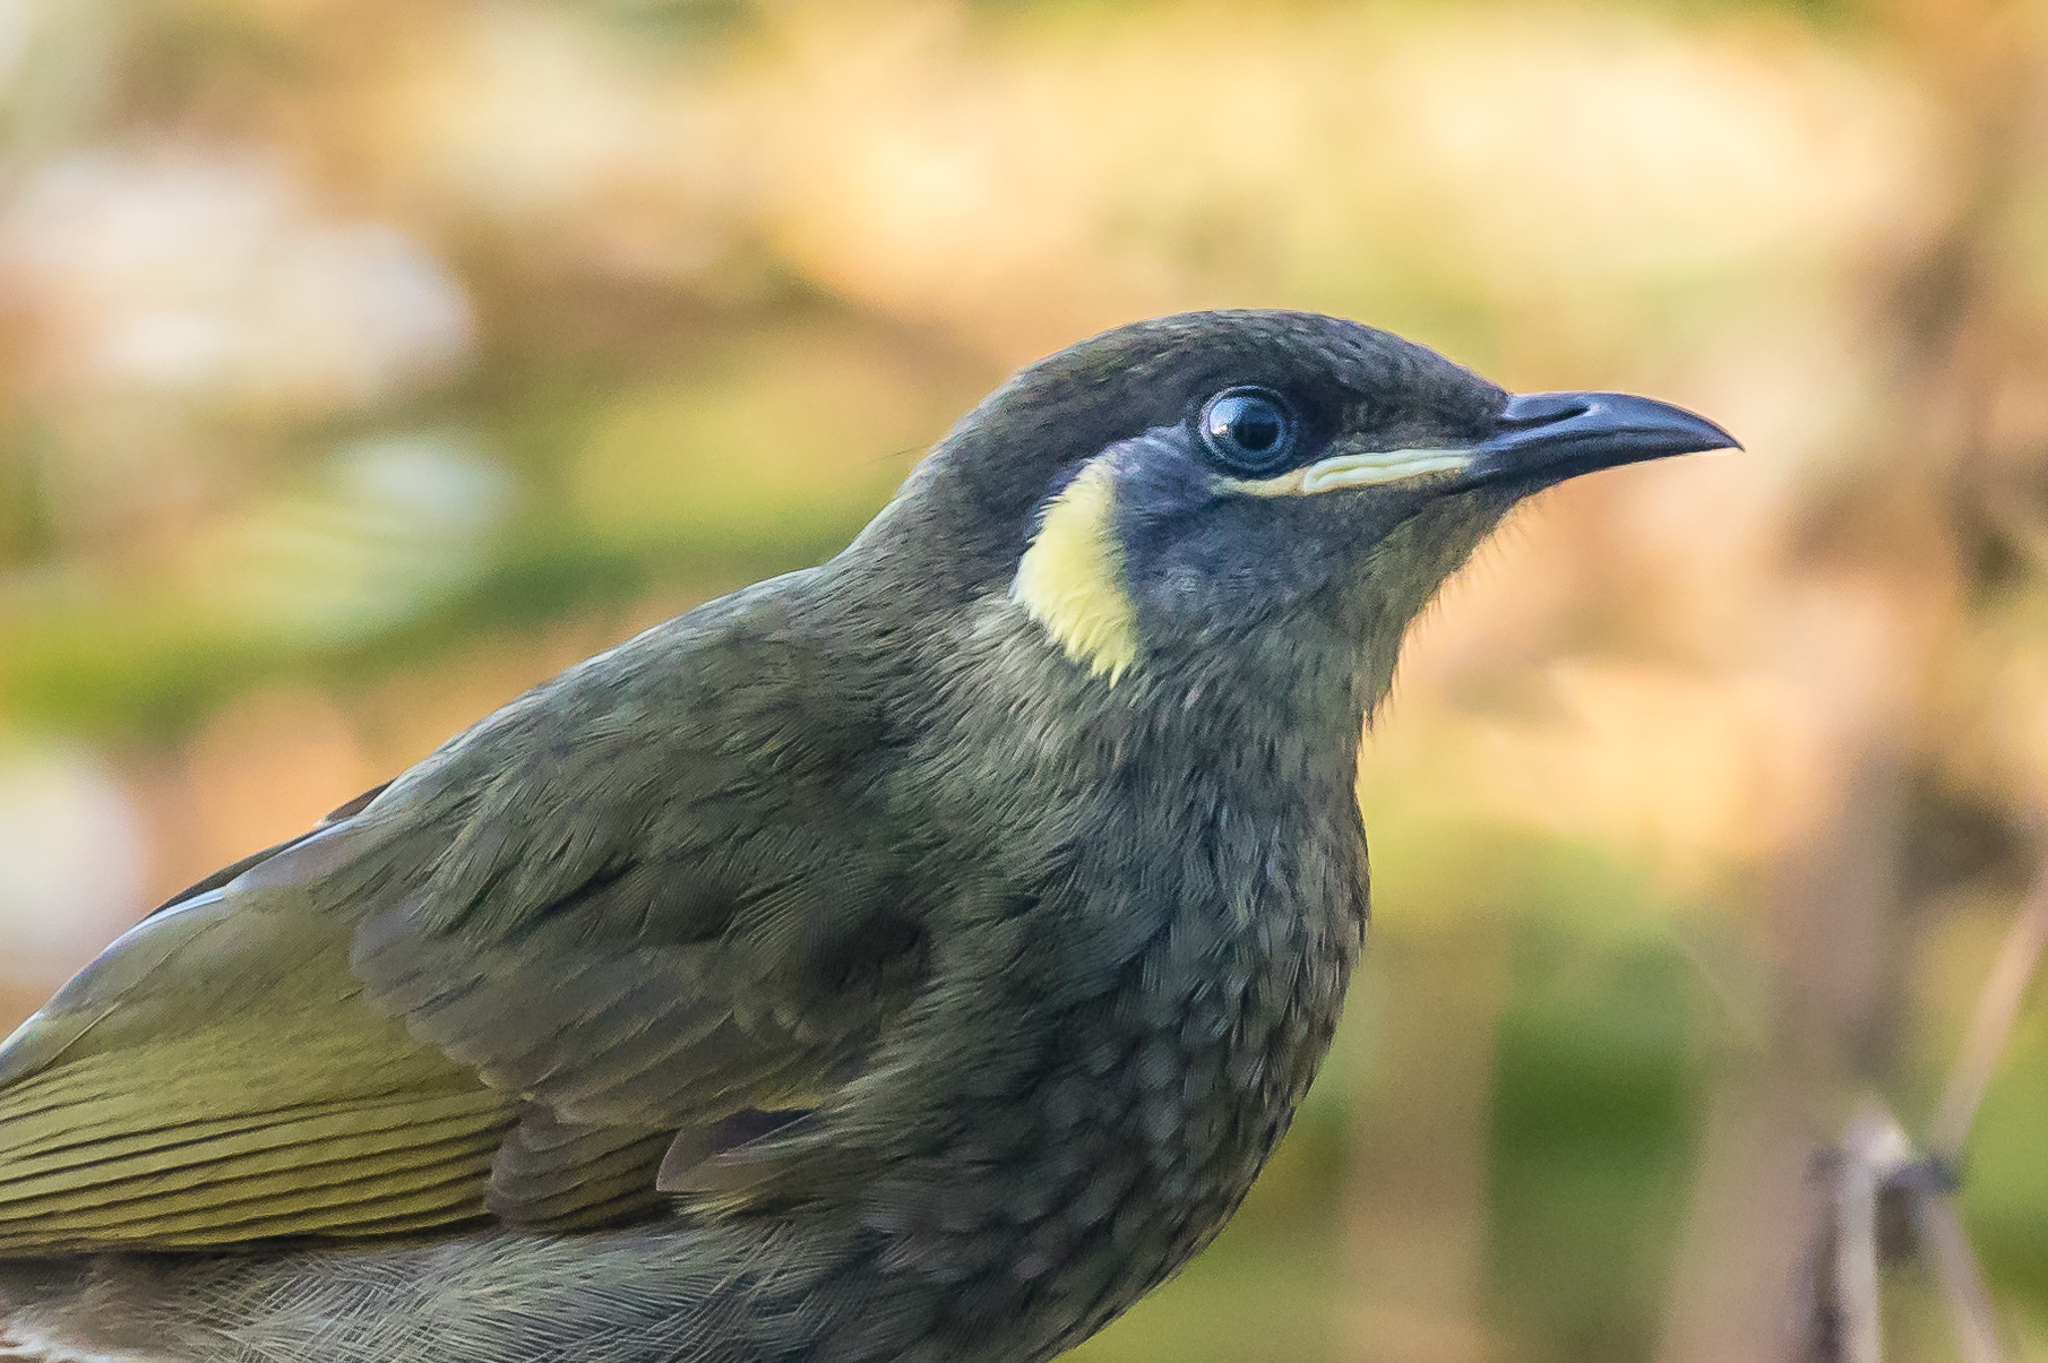 Lewin's Honeyeater (22 cm) frequents the wetter forests of Australia's eastern coast. They forage for insects in tree bark as well as nectar and fruits.